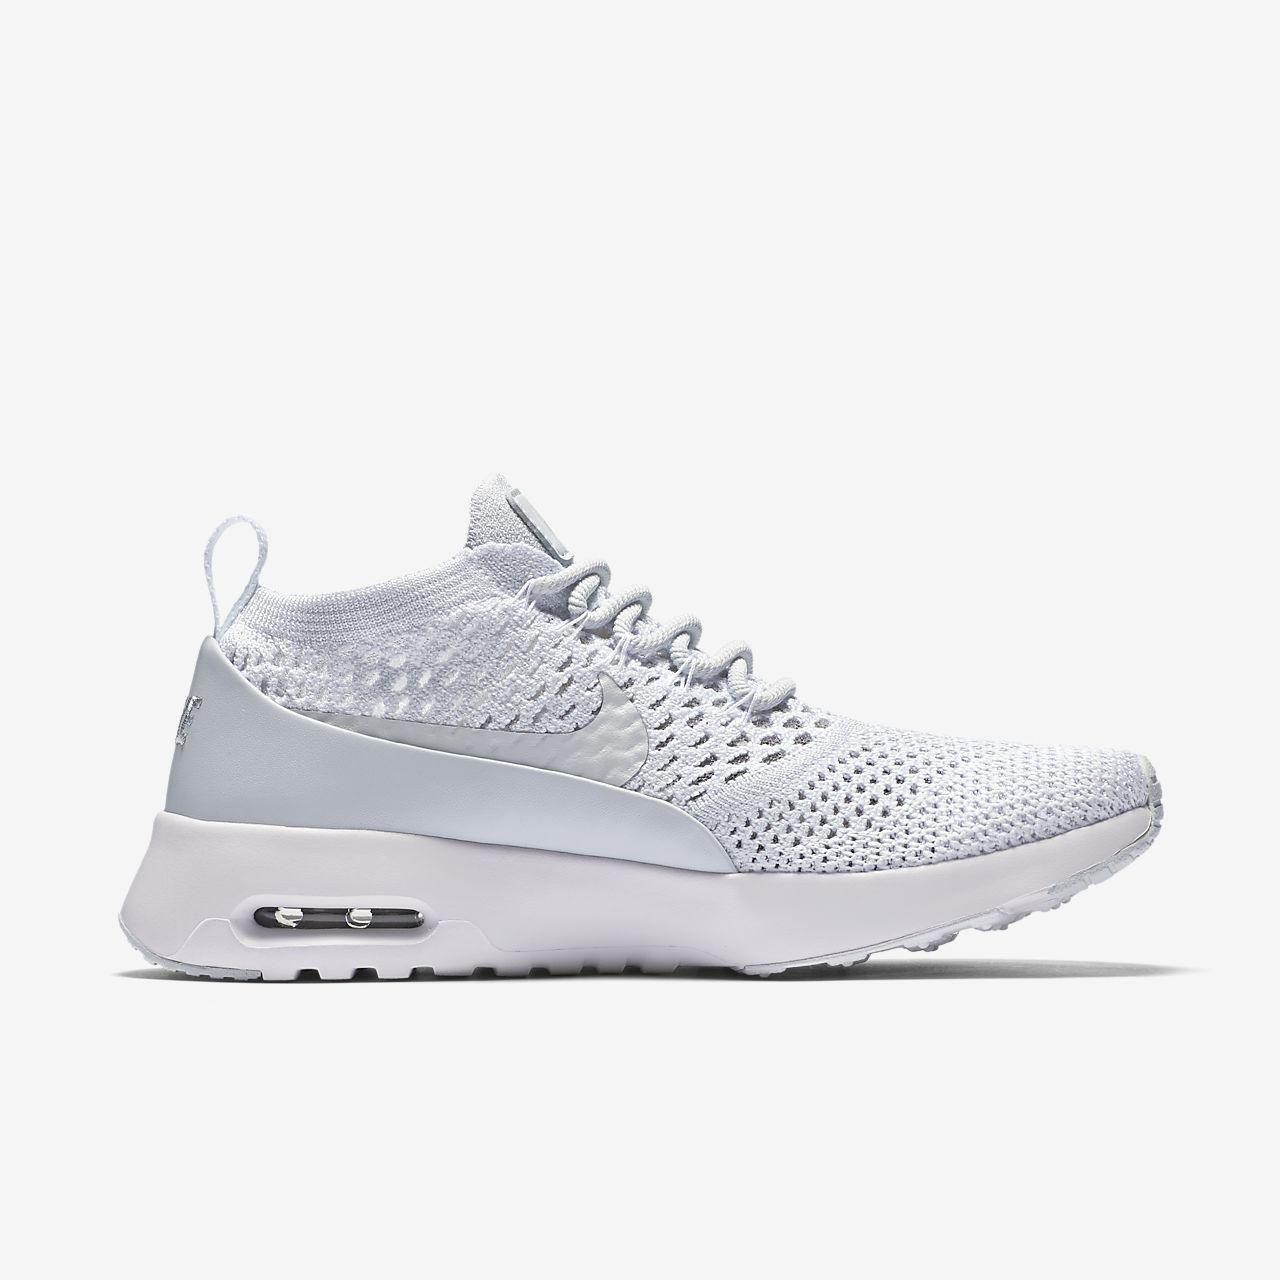 air max nike 2017 blanche nz